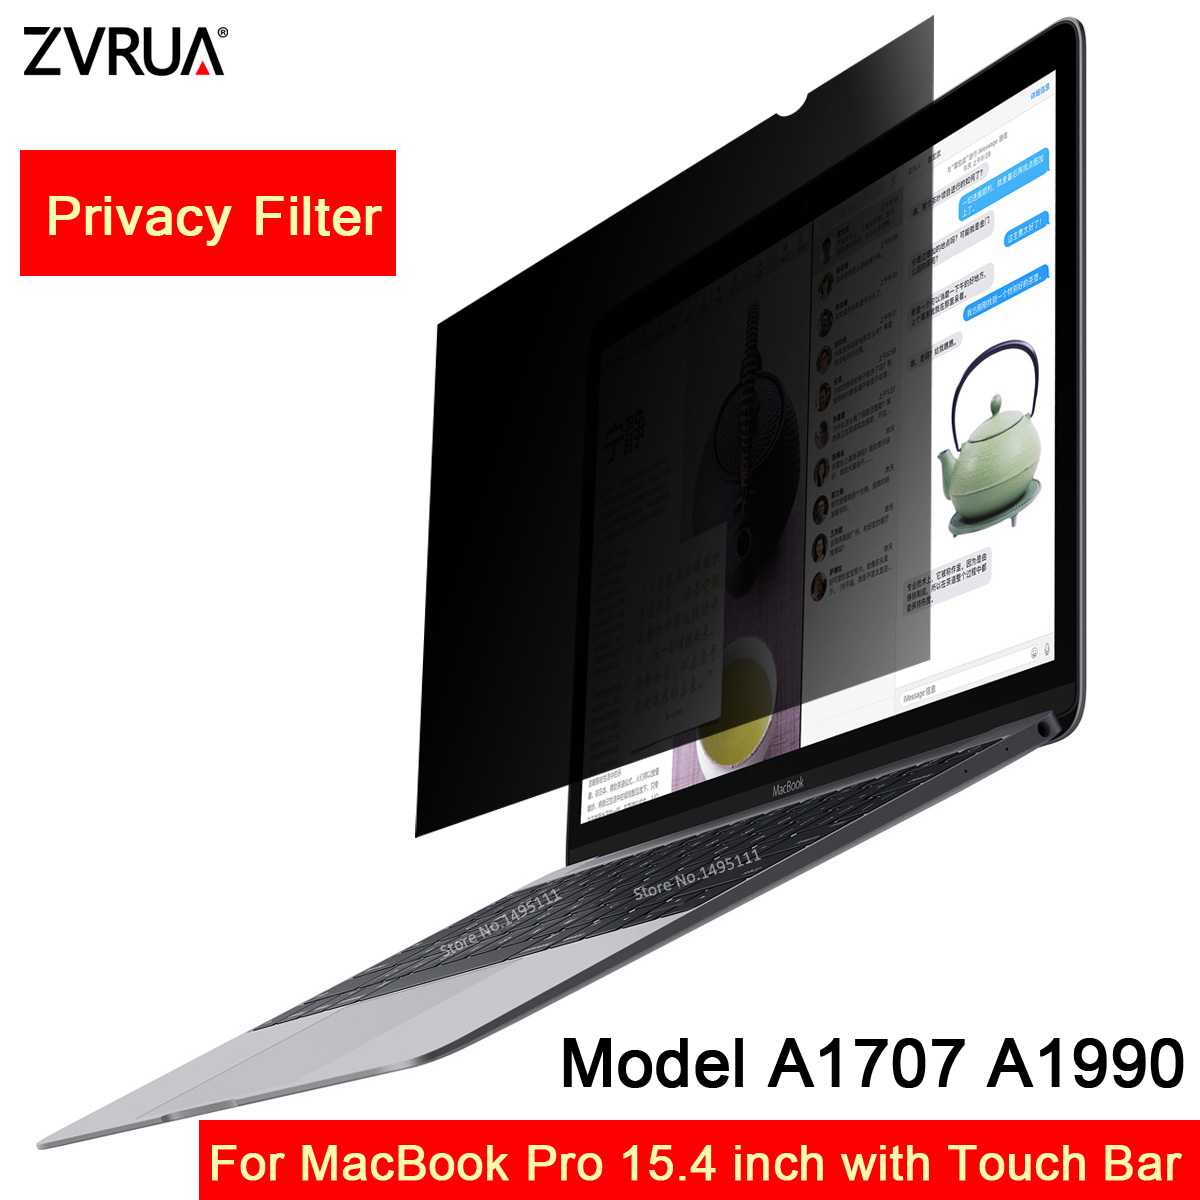 For 2016/2017/2018 MacBook Pro 15.4 inch with Touch Bar Model A1707 <font><b>A1990</b></font>, Privacy Filter <font><b>Screens</b></font> Protective film (342mm*223mm) image